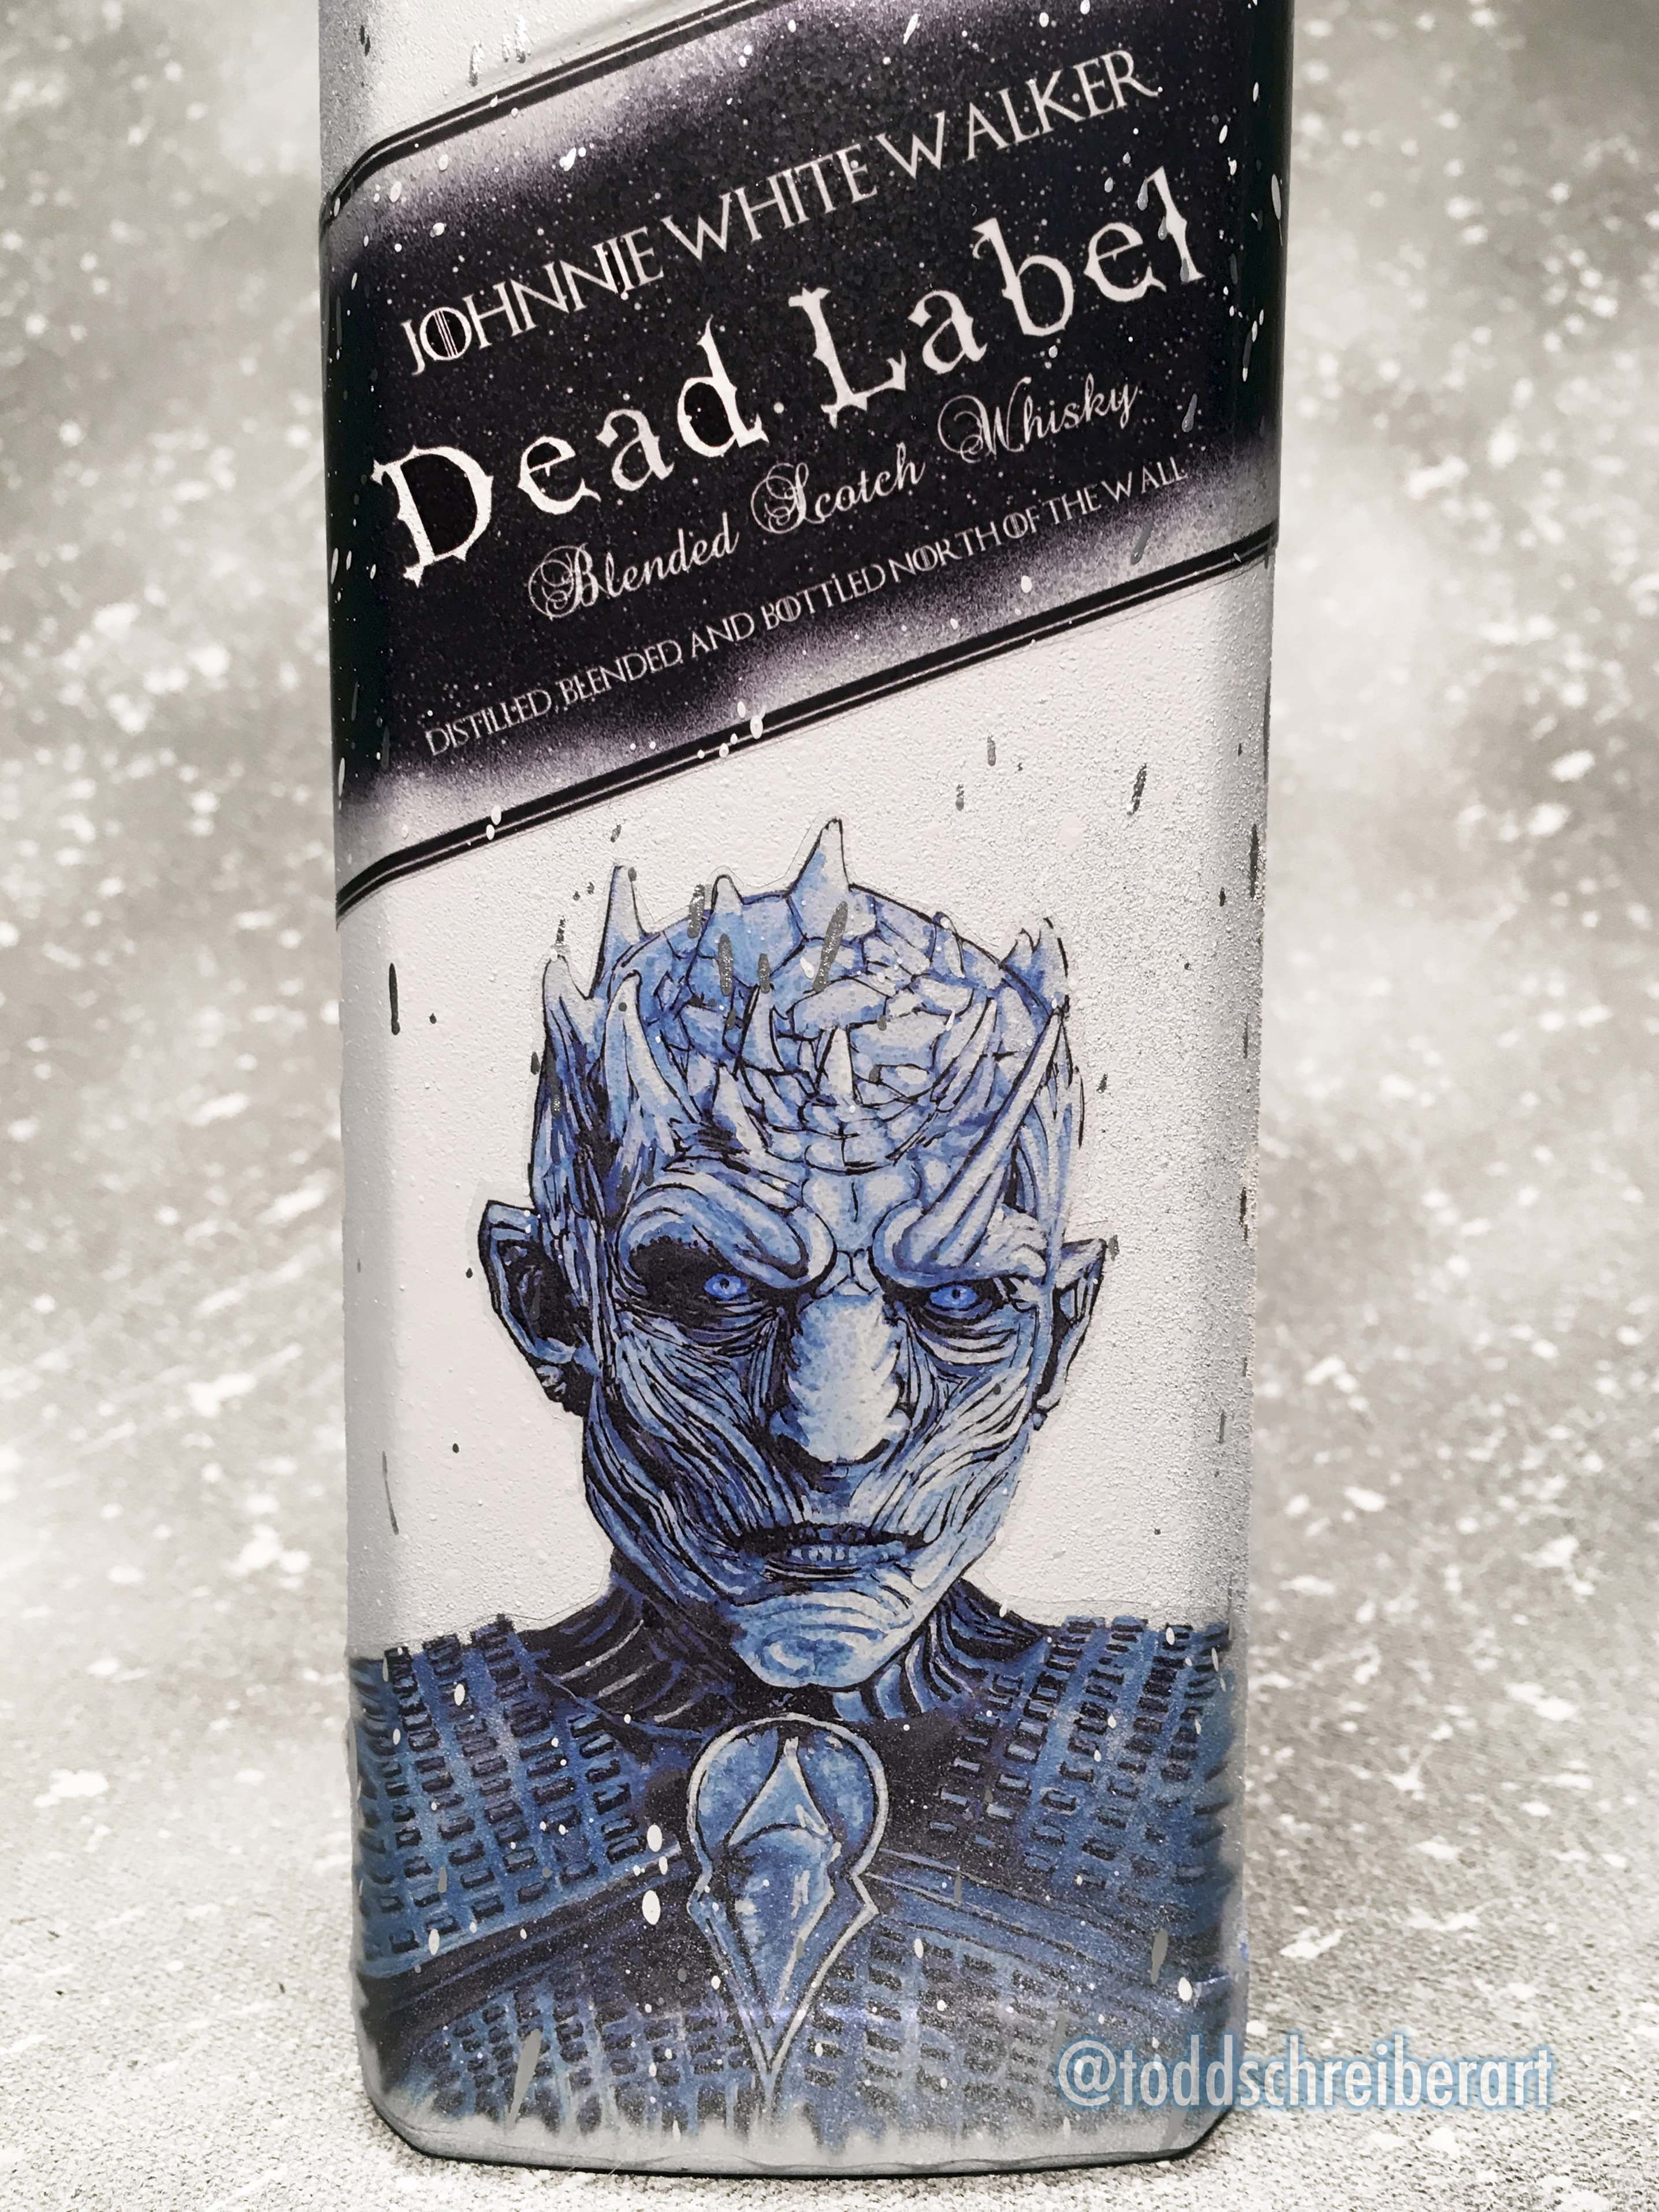 No Spoilers Johnnie White Walker Dead Label Night S King Johnnie White Walker Johnnie Walker Whisky Cigars And Whiskey